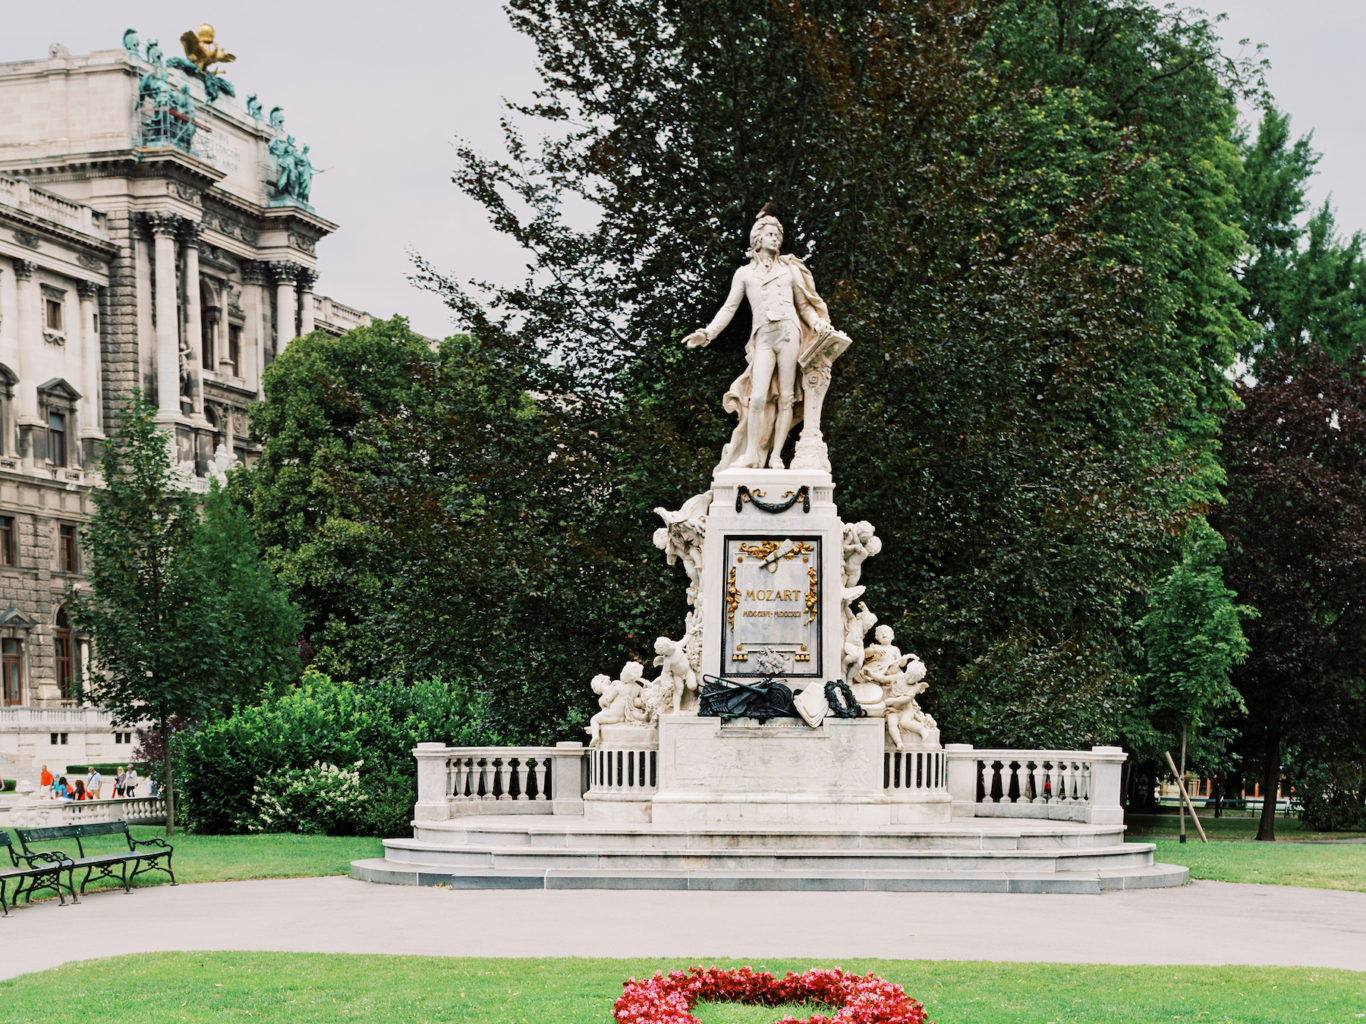 Monument to Mozart in Vienna, Austria